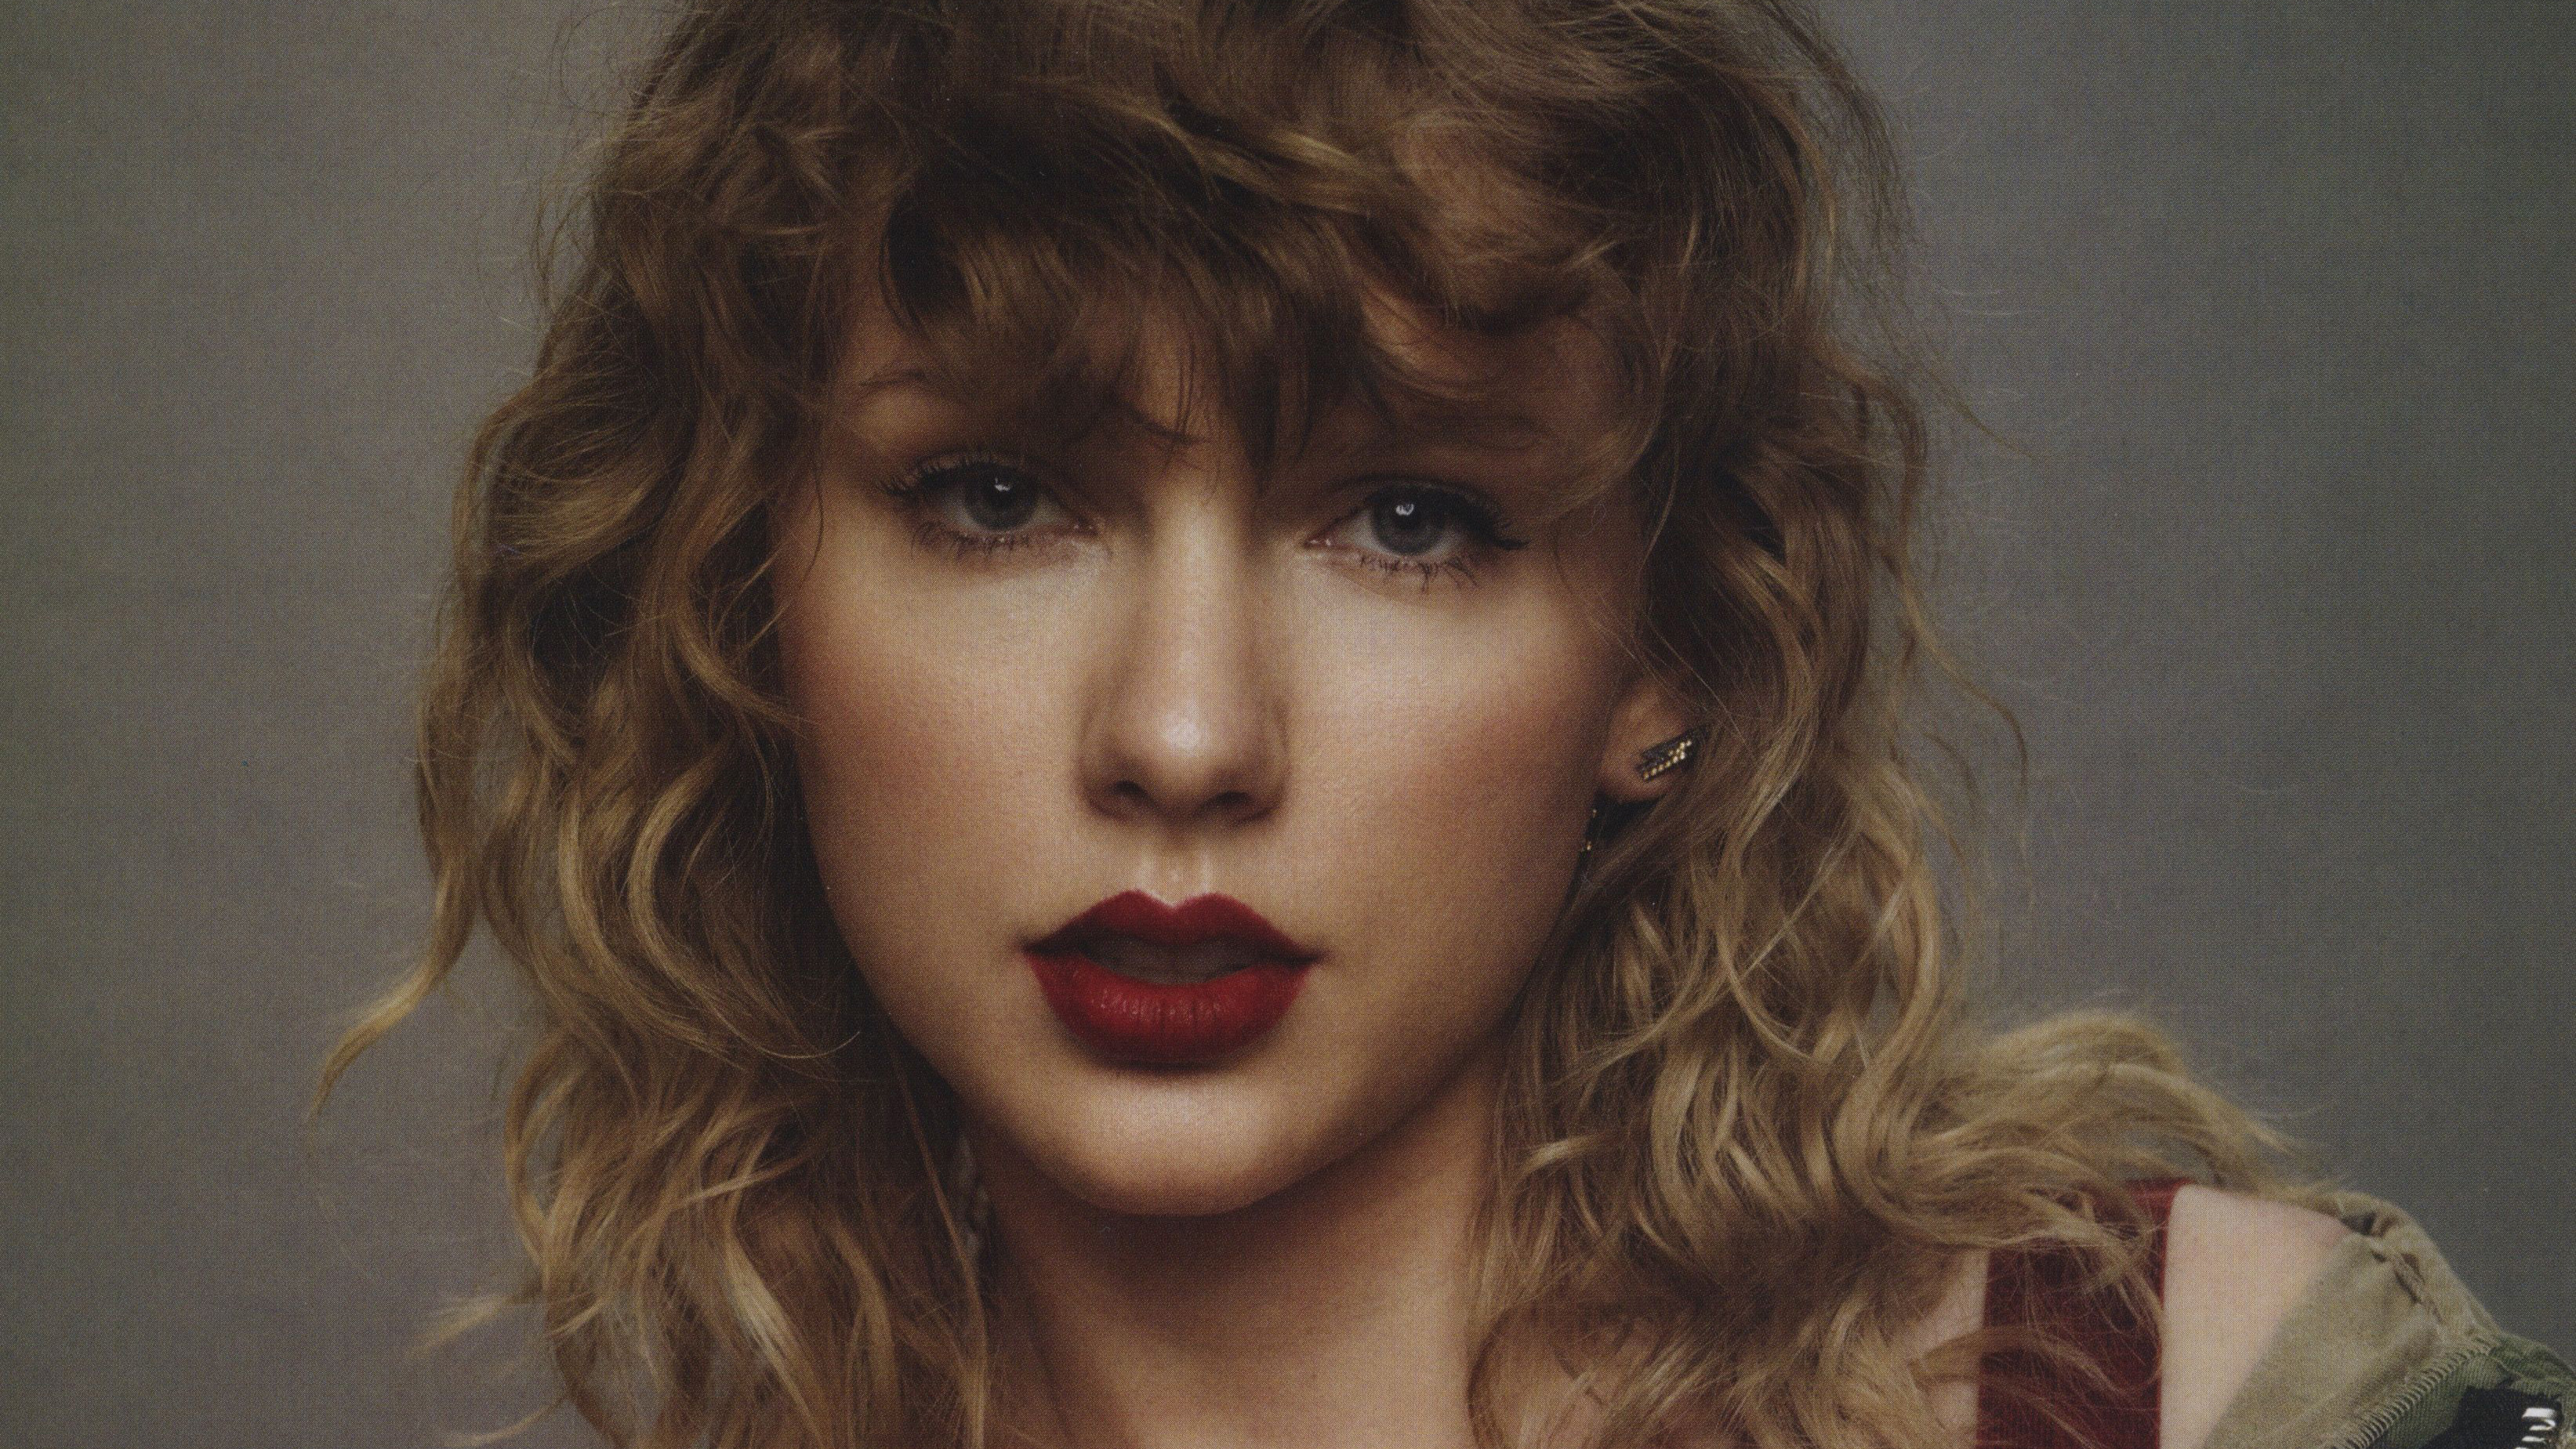 Taylor Swift 2018 4k, HD Music, 4k Wallpapers, Images